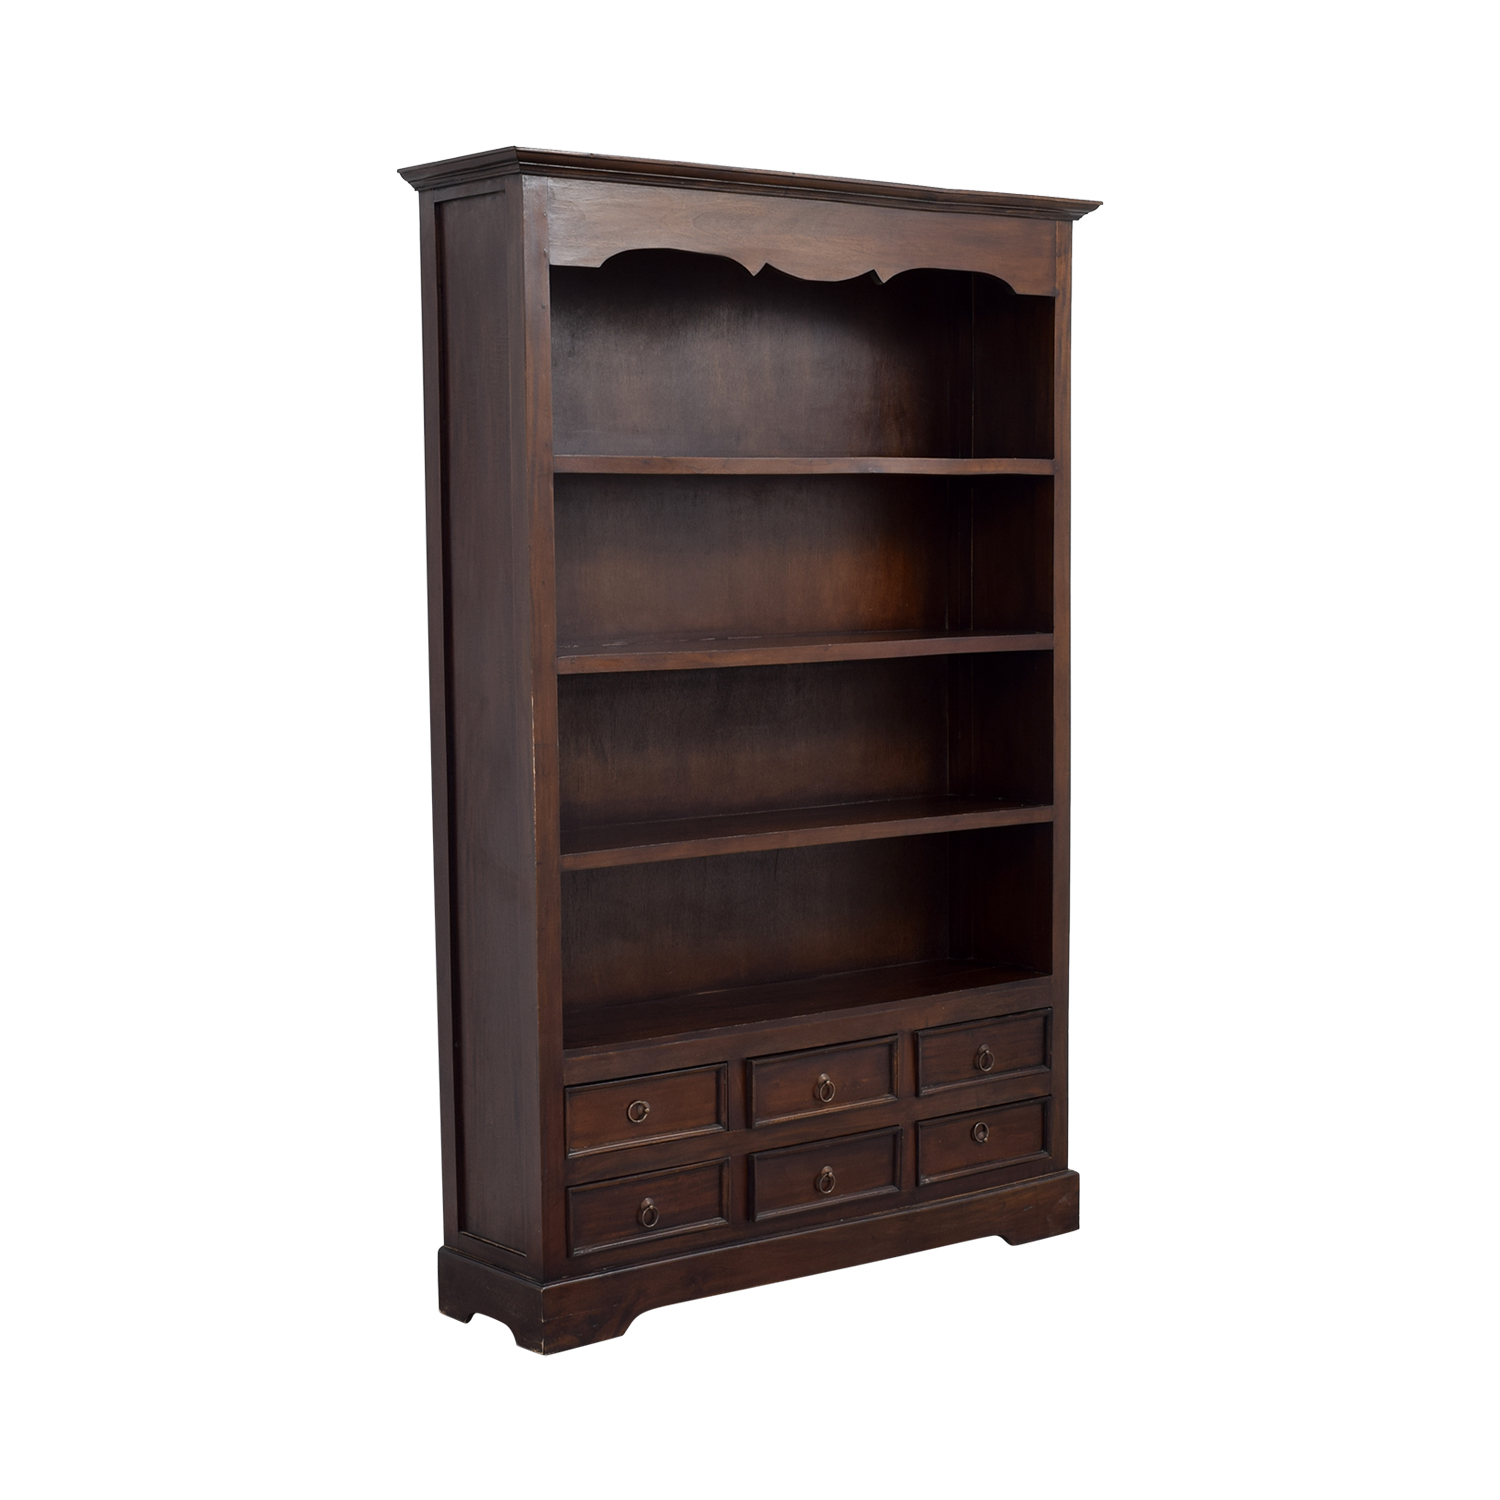 Antique Dovetailed Bookcase with Six-Drawers Bookcases & Shelving